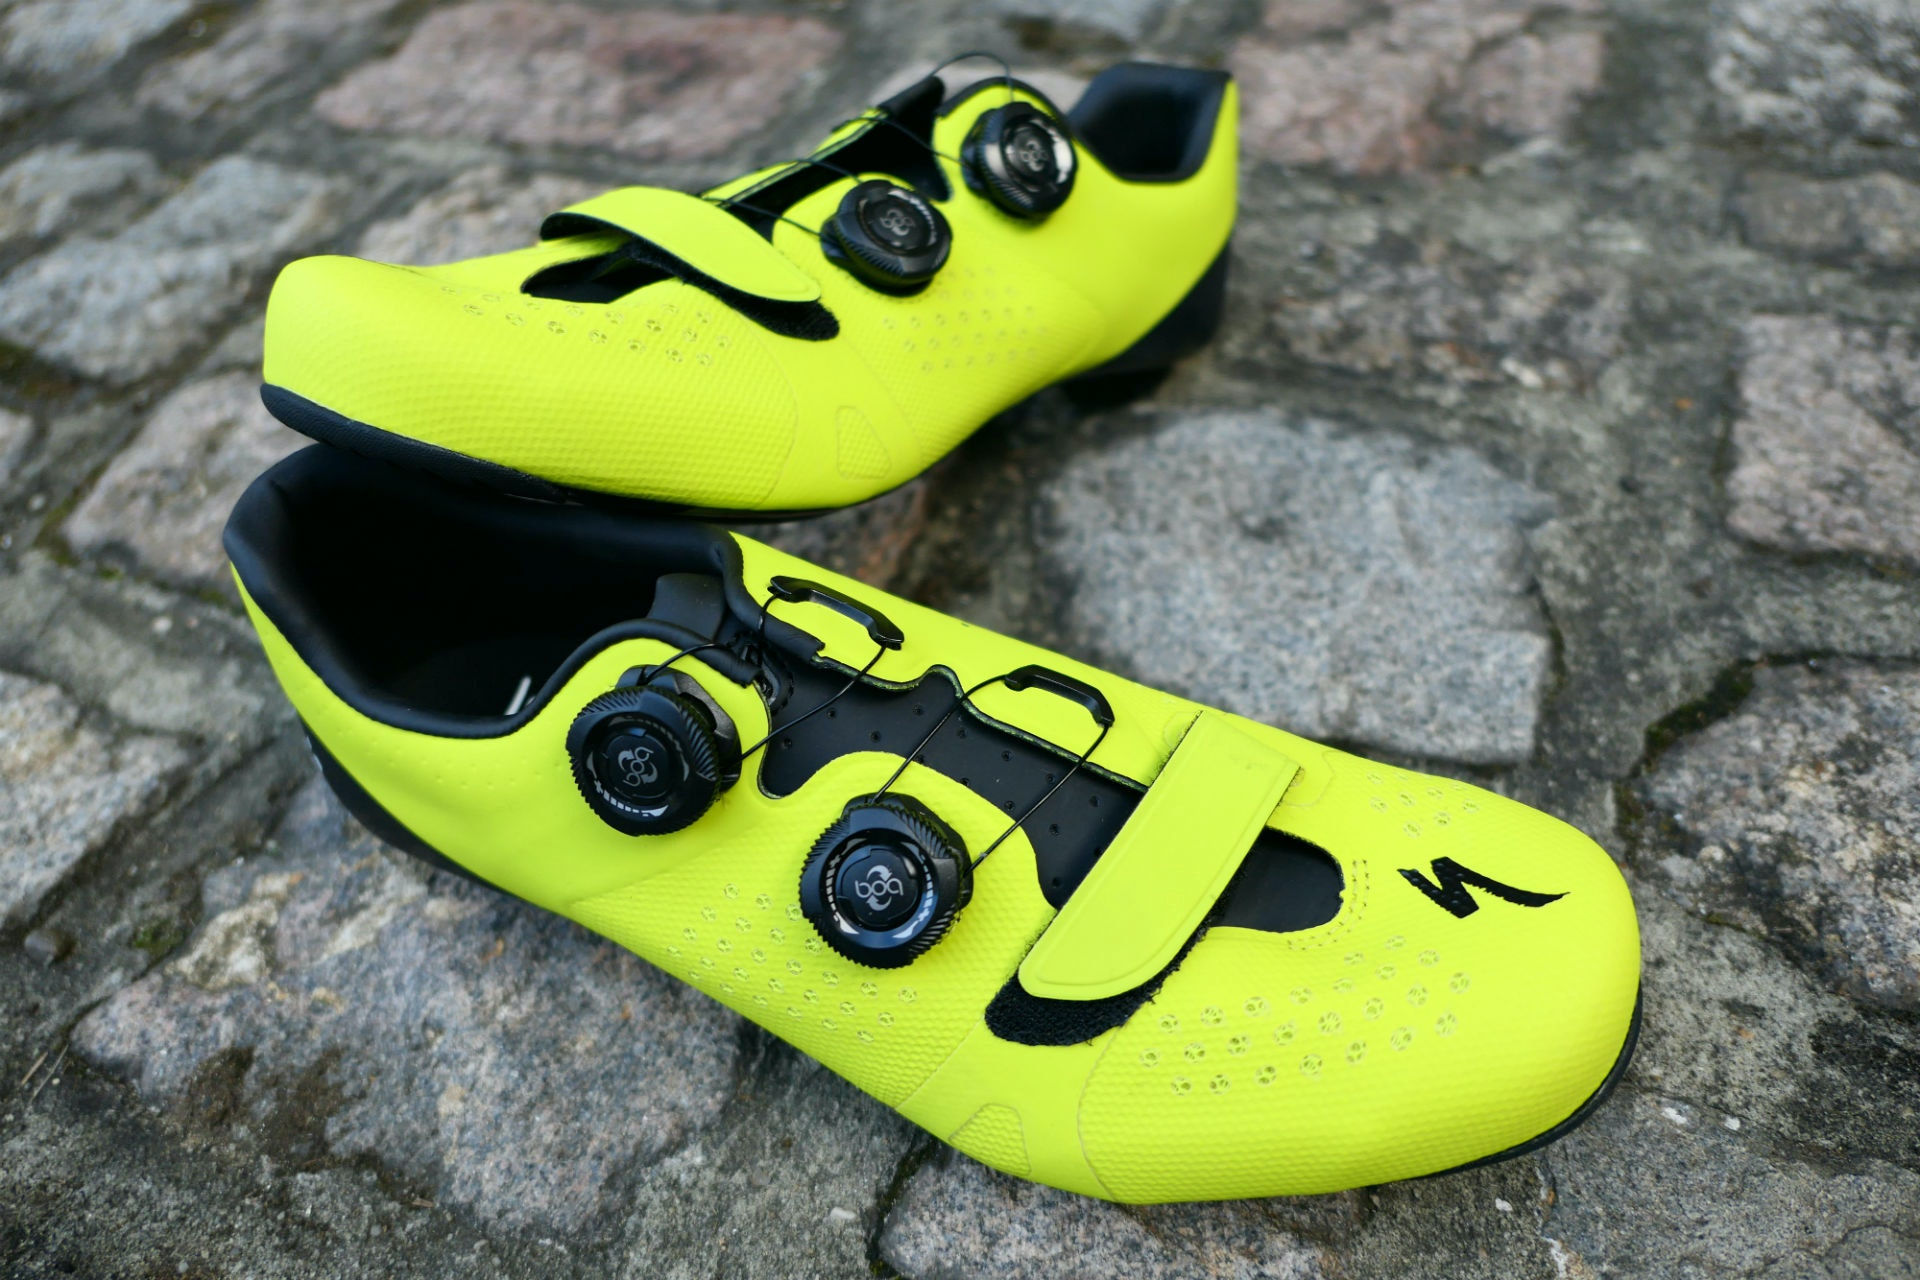 Something for the weekend: Specialized Torch 3.0 road shoes